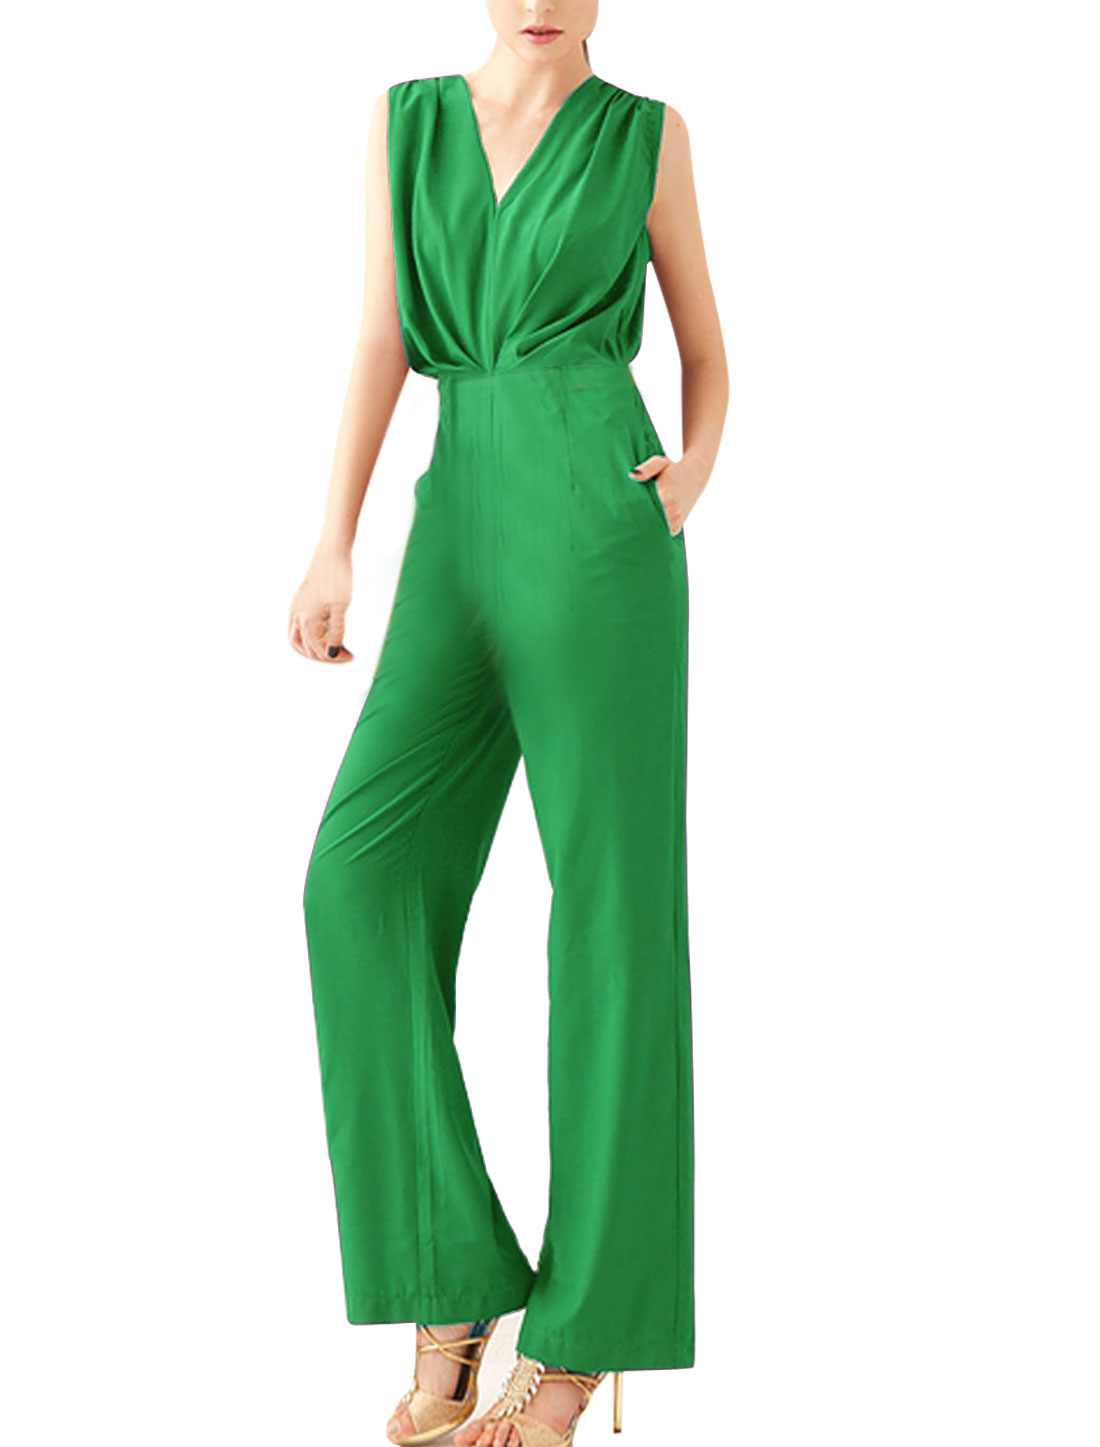 Women M Green V Neck Sleeveless Design Solid Color Casual Elegant Jumpsuit